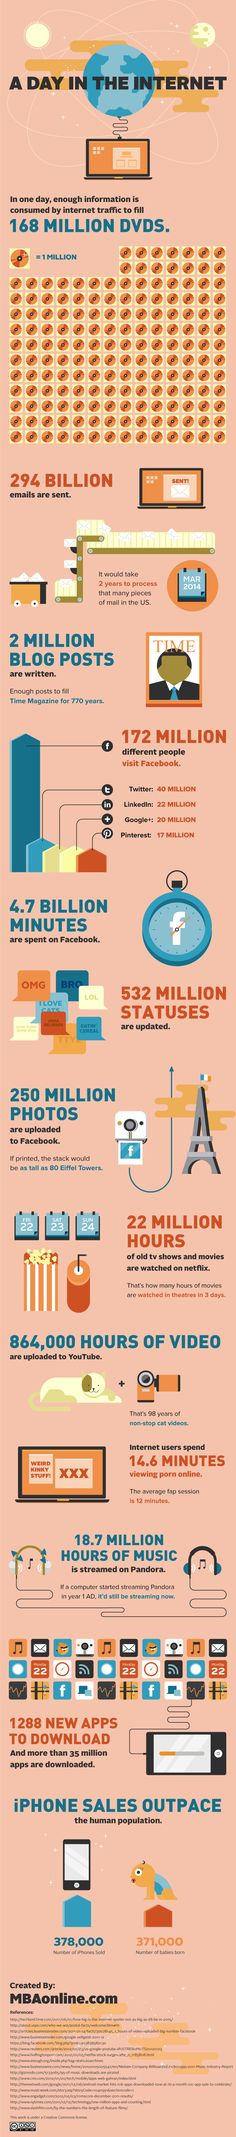 A Typical Day in the Internet #infographic @MBAOnline